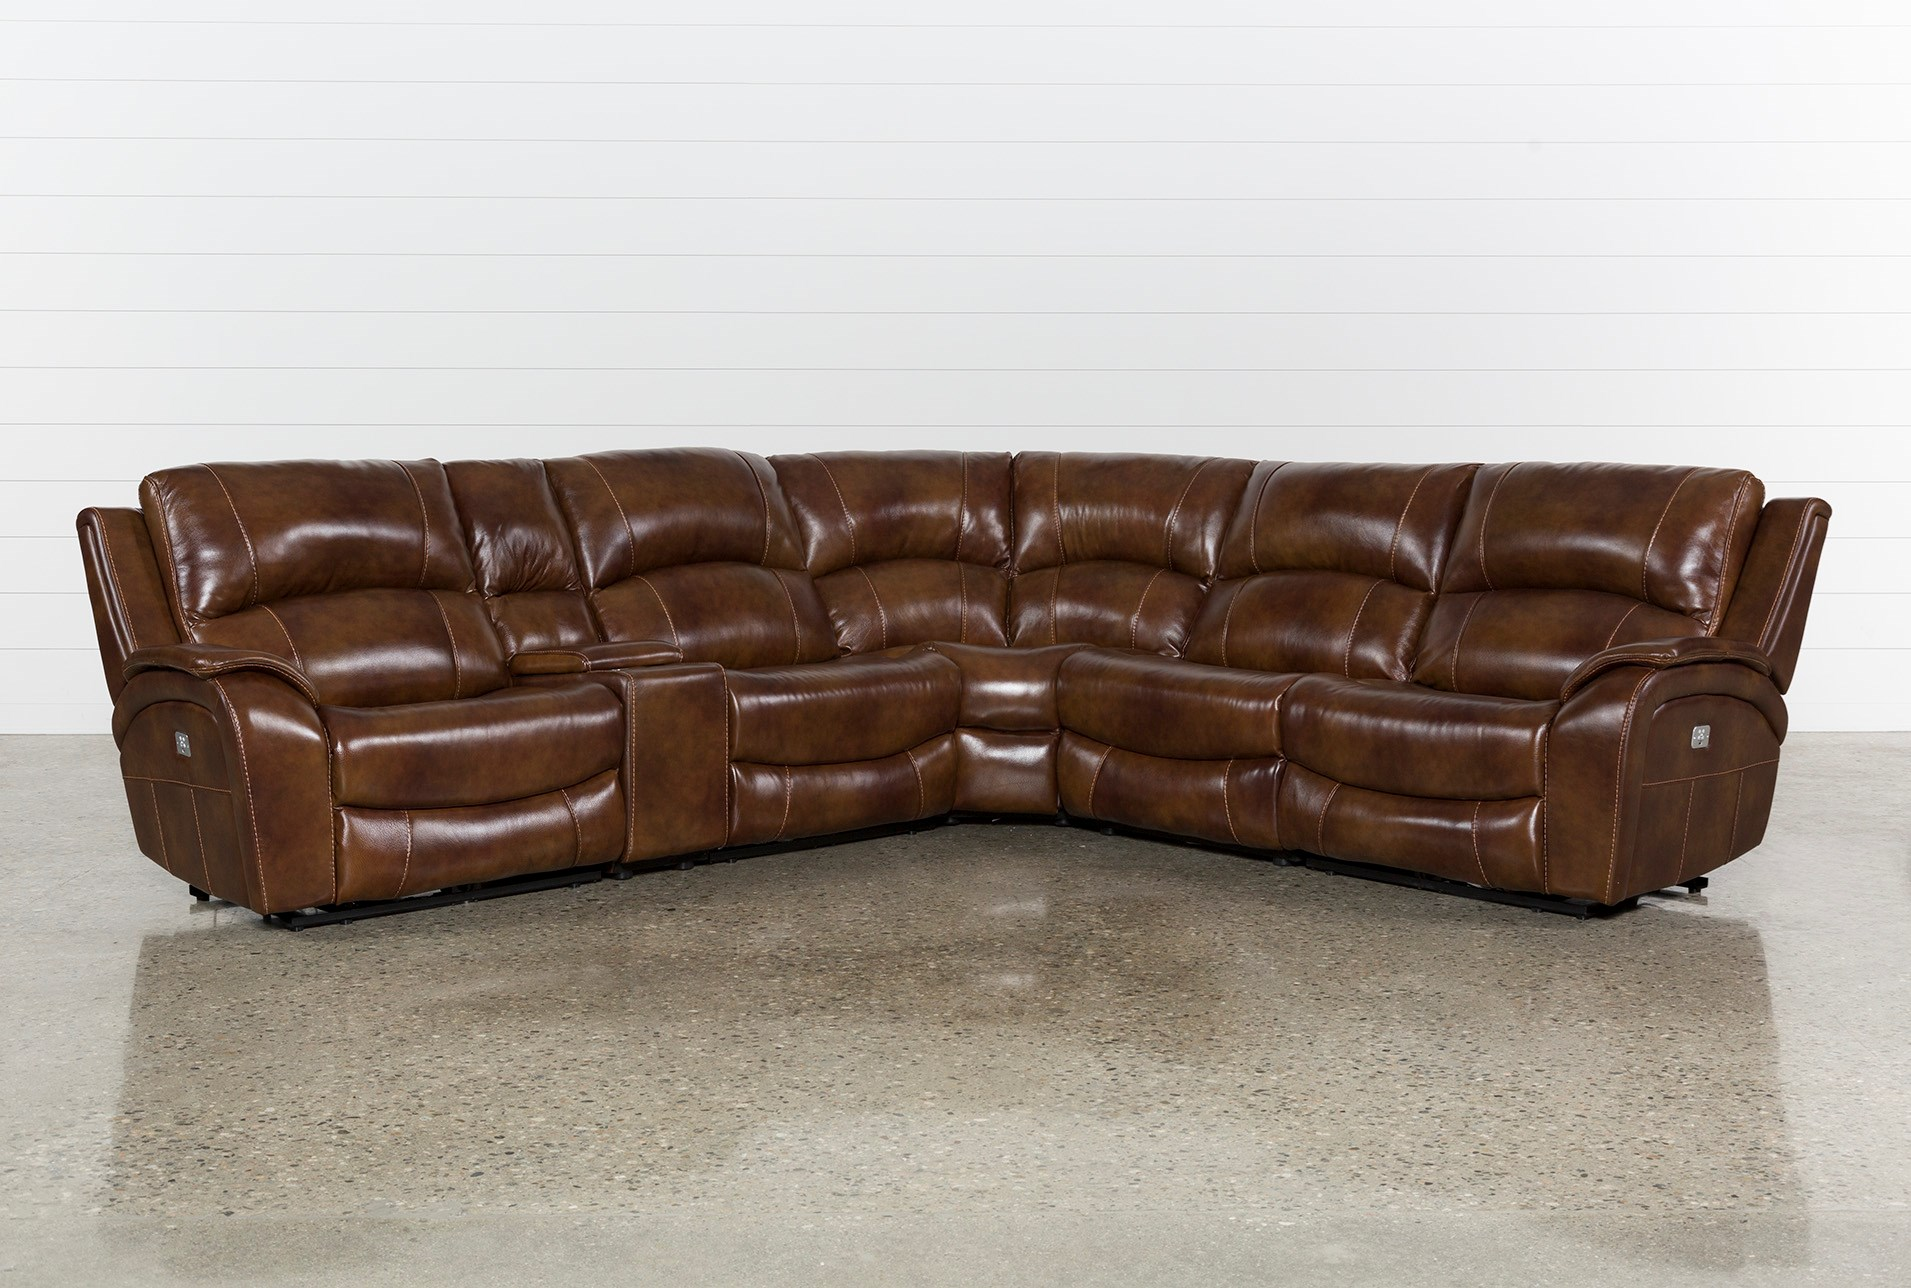 Travis Cognac Leather 6 Piece Power Reclining Sectional Wpwr Hdrst